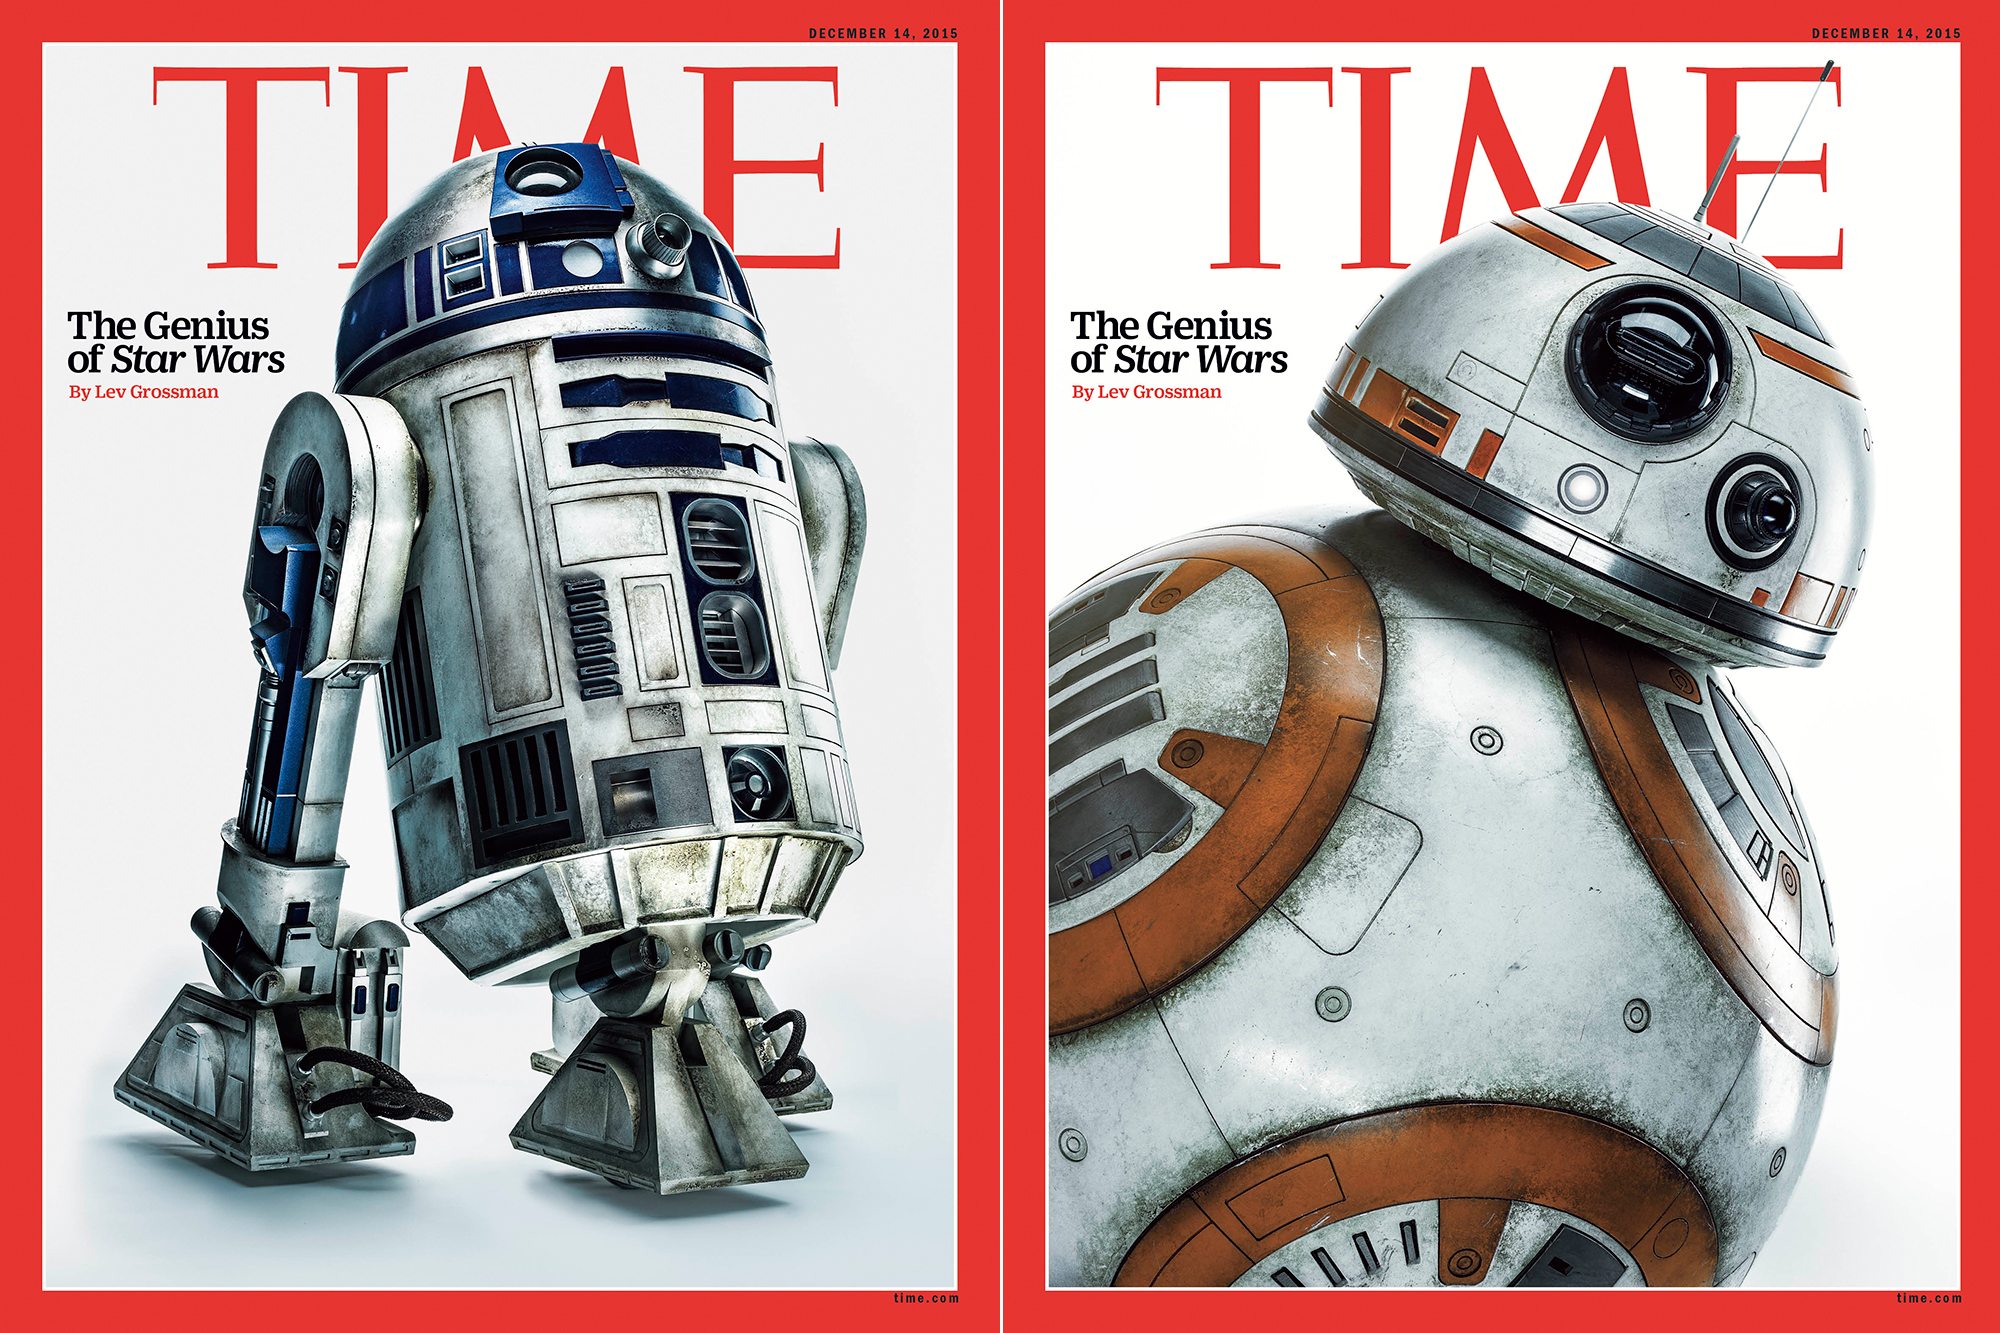 R2-D2 and BB-8 on the cover of the Dec. 14, 2015 issue of TIME.